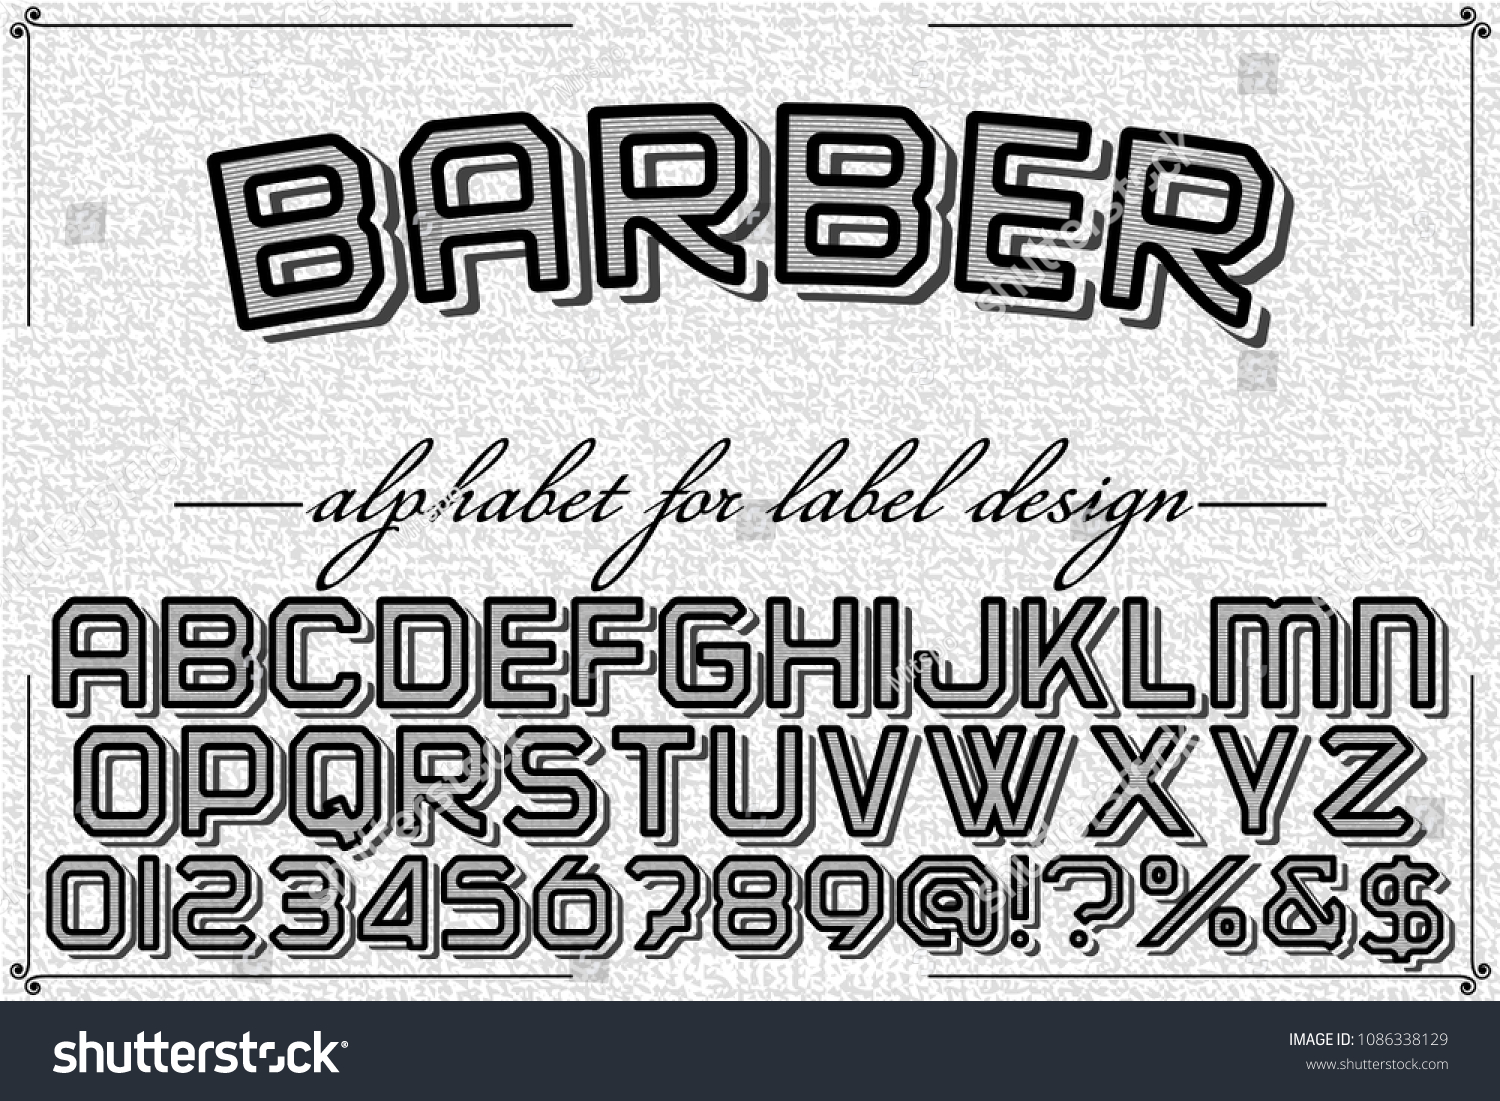 Font Alphabet Name Barber Script Typeface Stock Vector